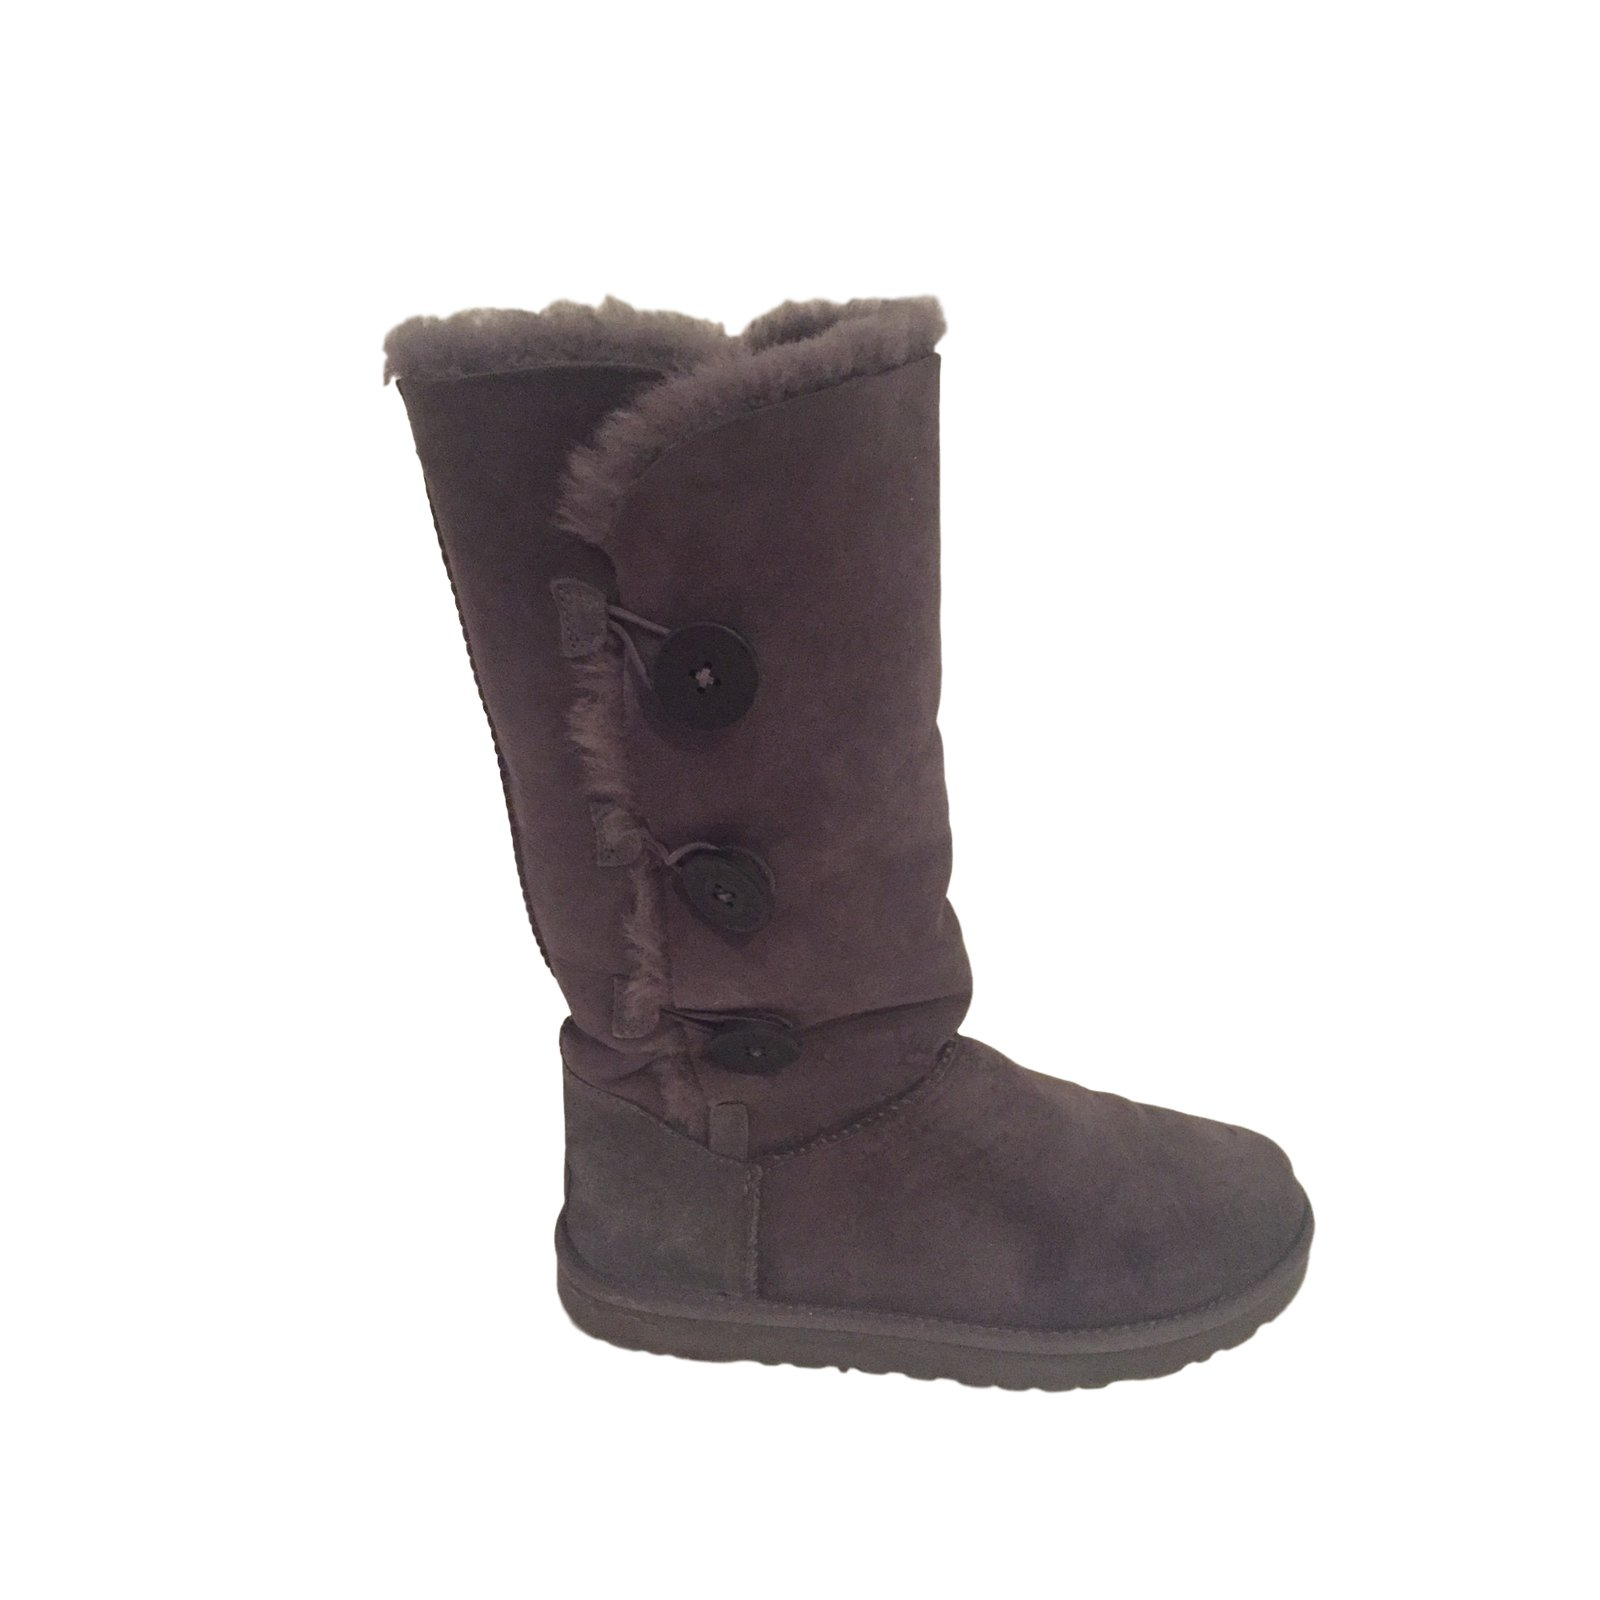 BAILEY BUTTON TRIPLET ( Femme ) | St Honoré 229 Paris | Ugg